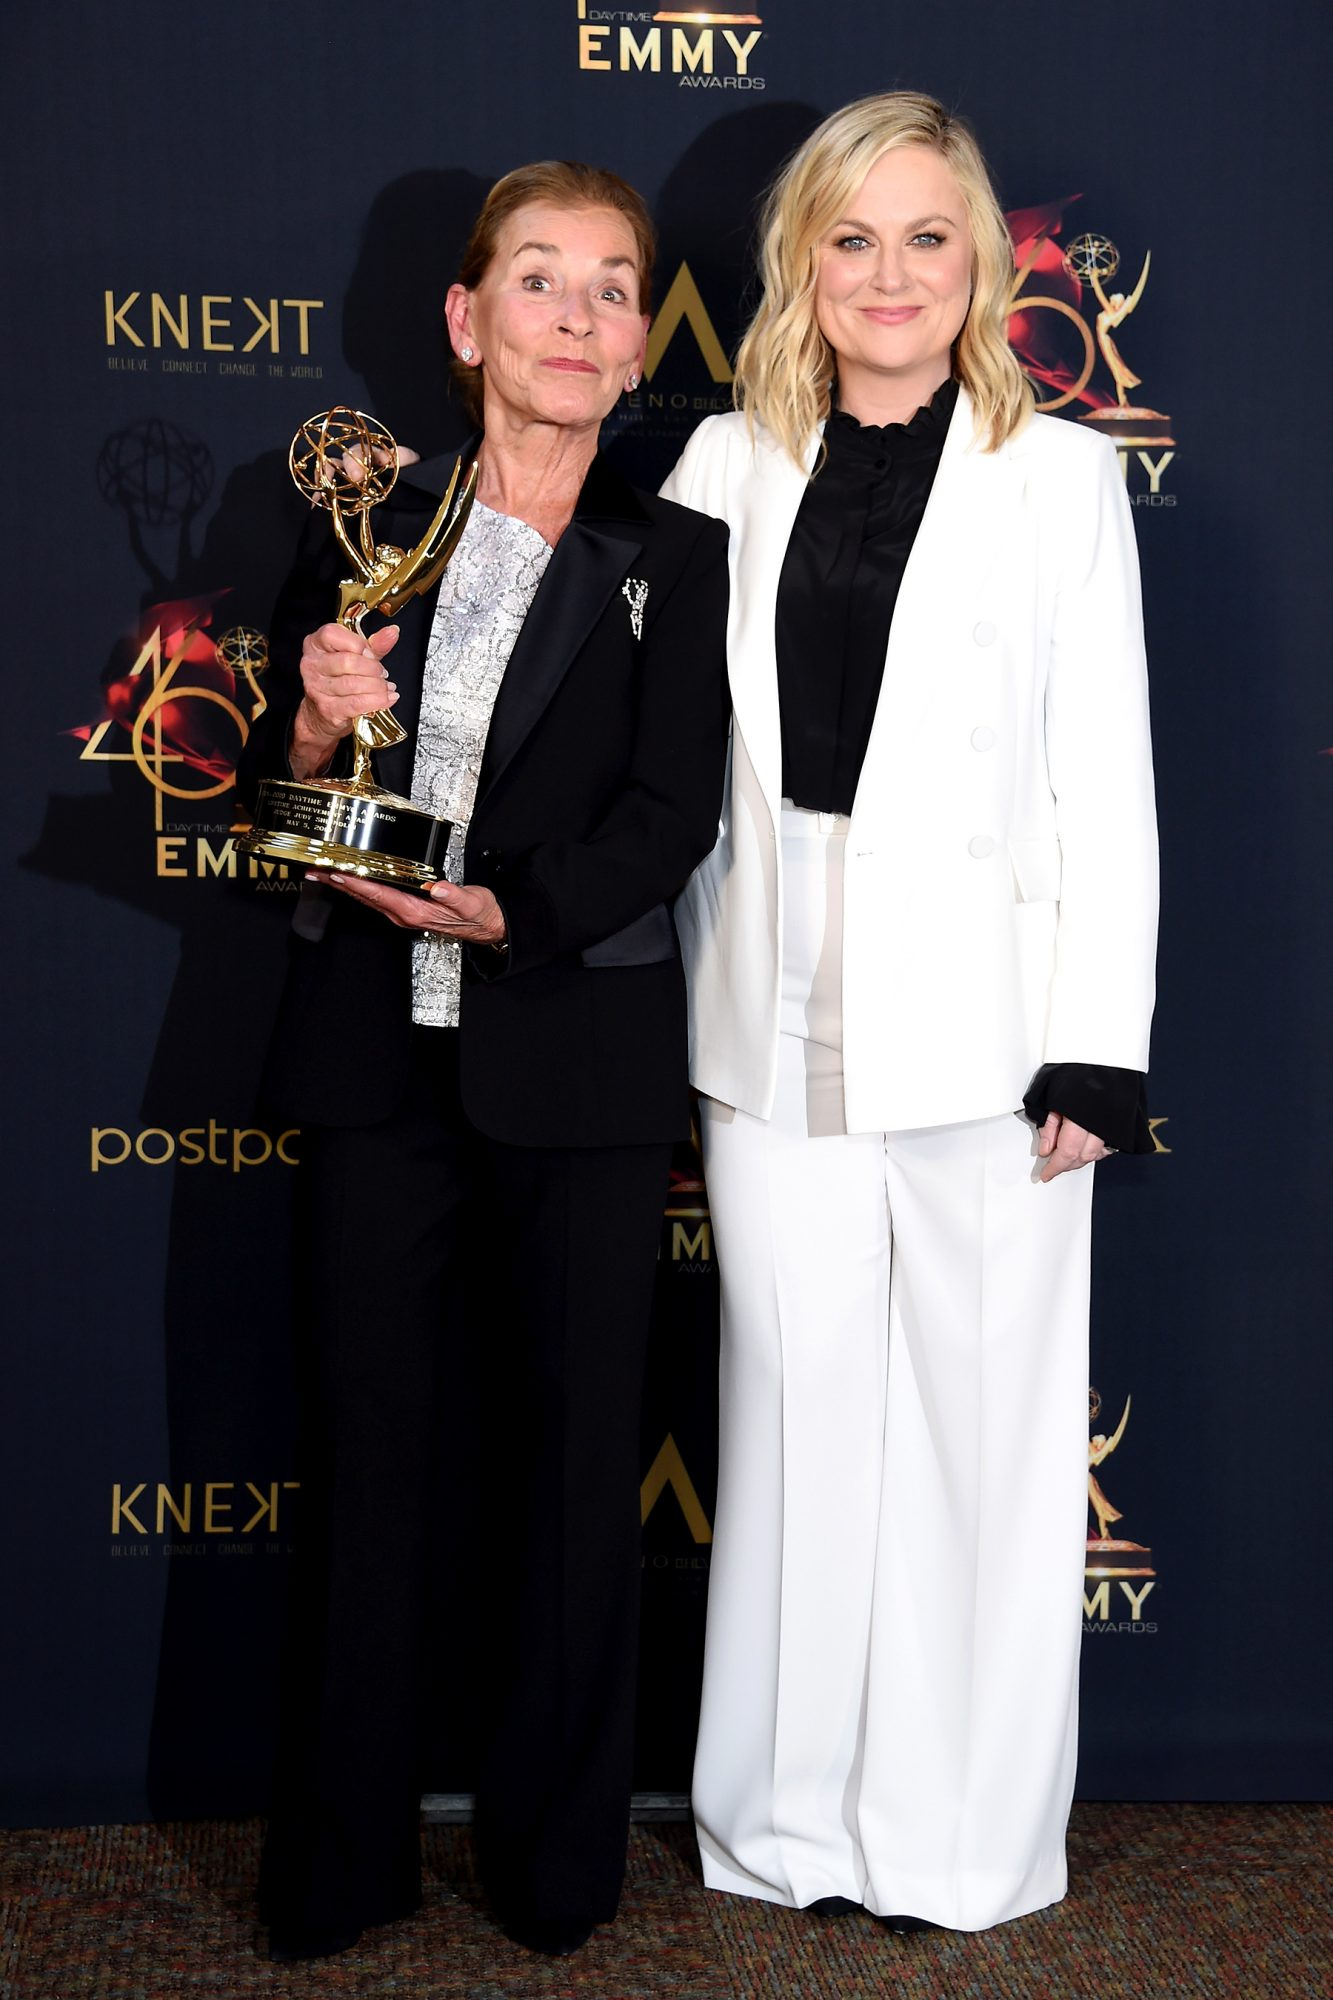 Judge Judy and Amy Poehler